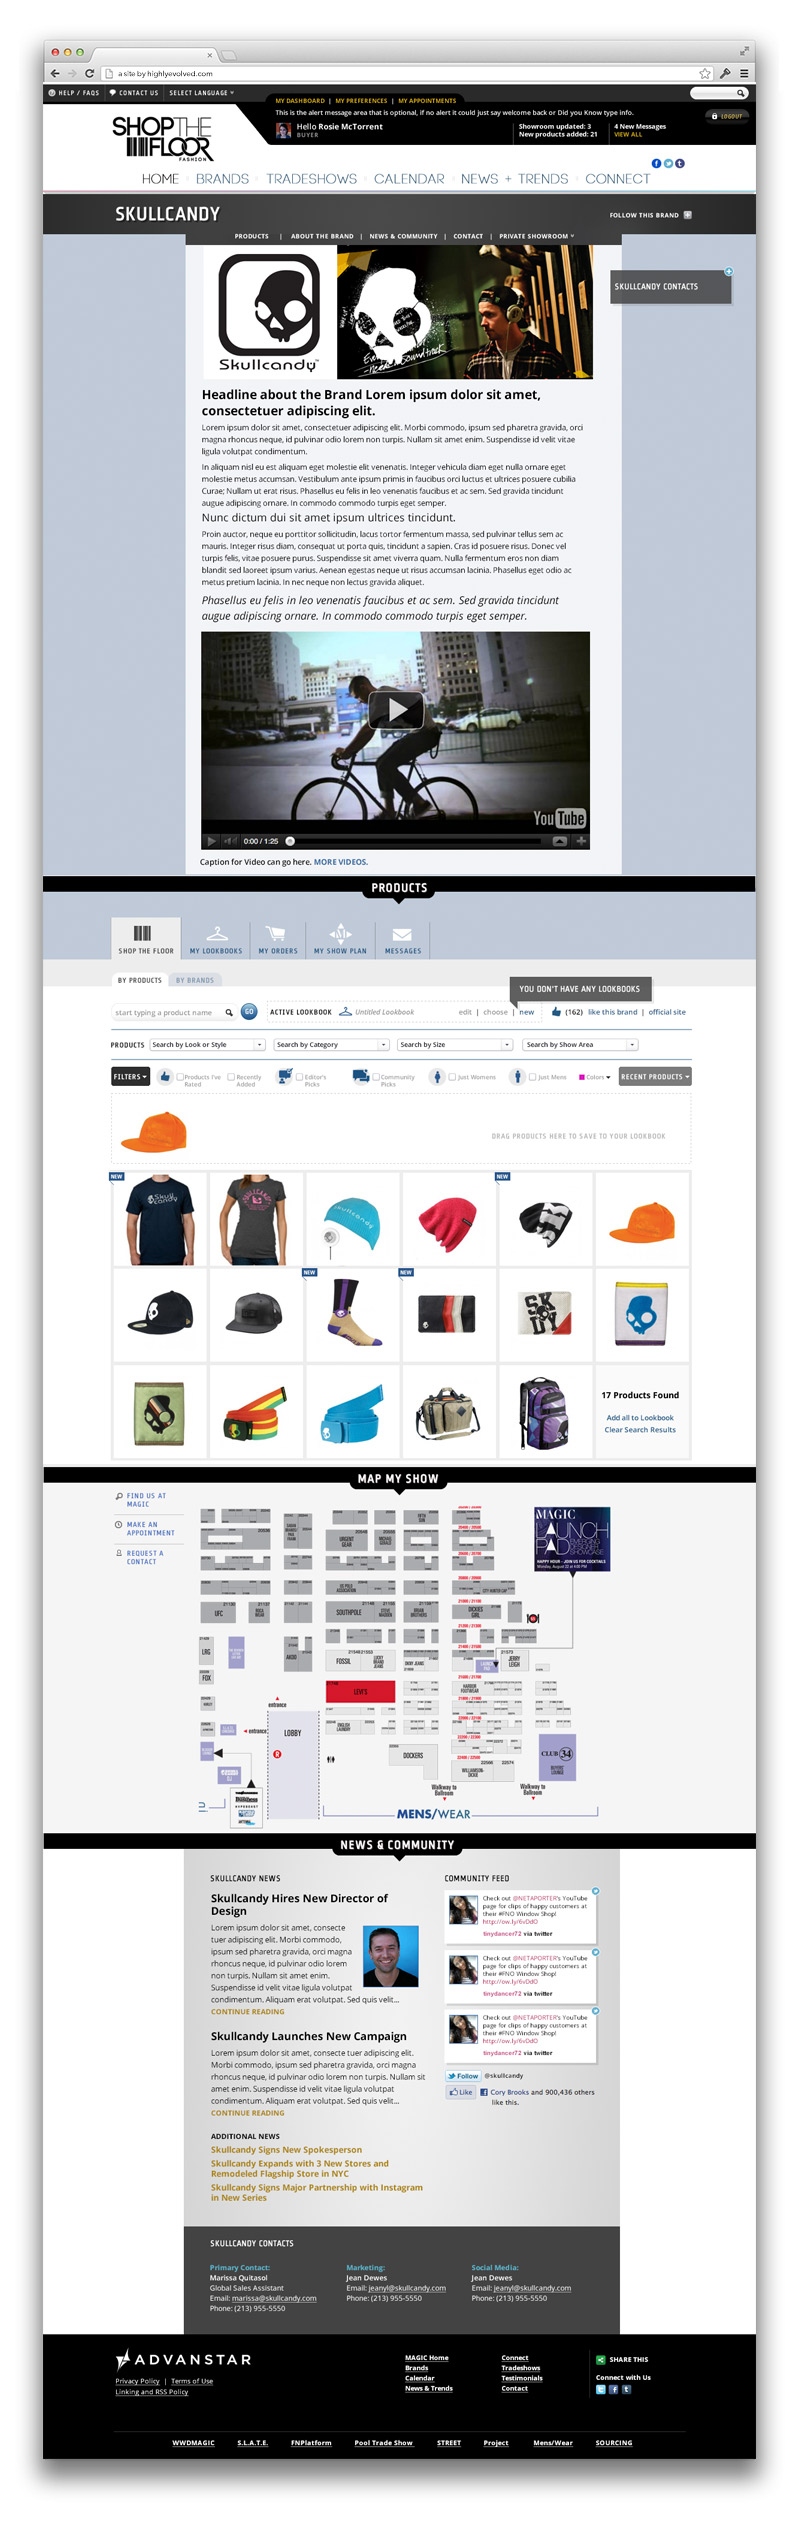 Sample brand page - each brand would have their own customizable showroom.